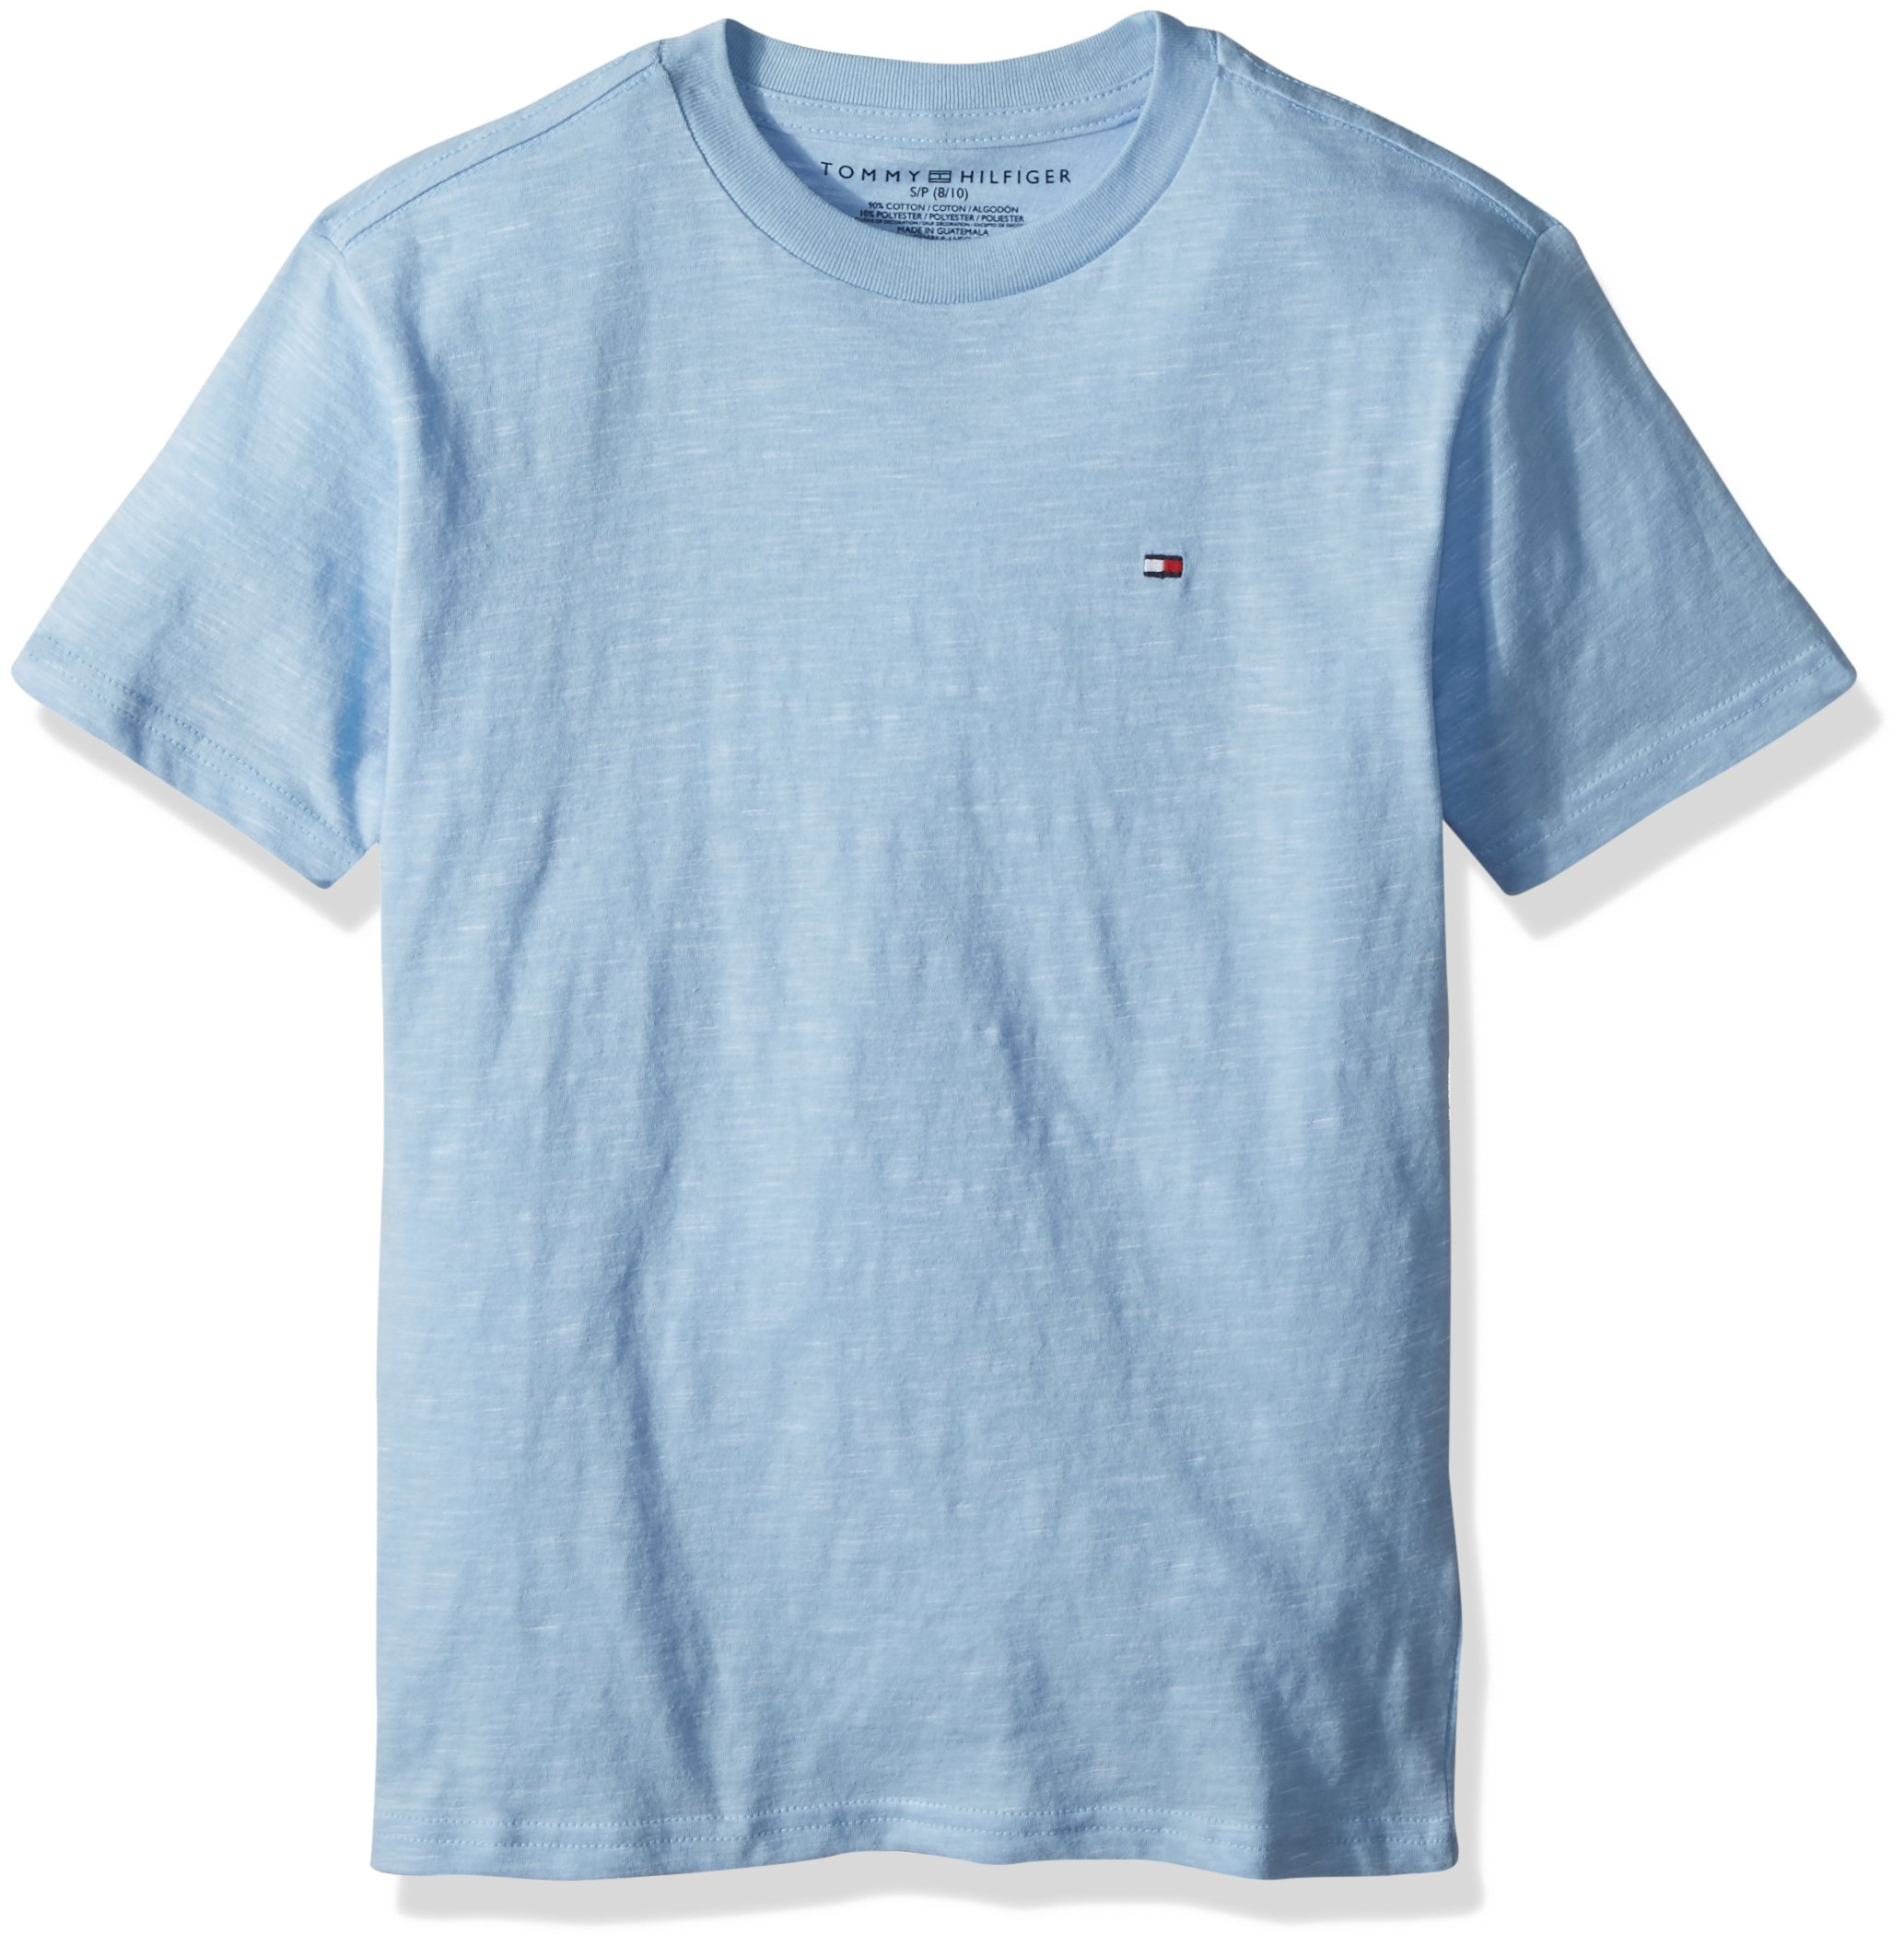 Tommy Hilfiger Little Boys' Short Sleeve Solid Crew-Neck T-Shirt, Placid Blue, 7